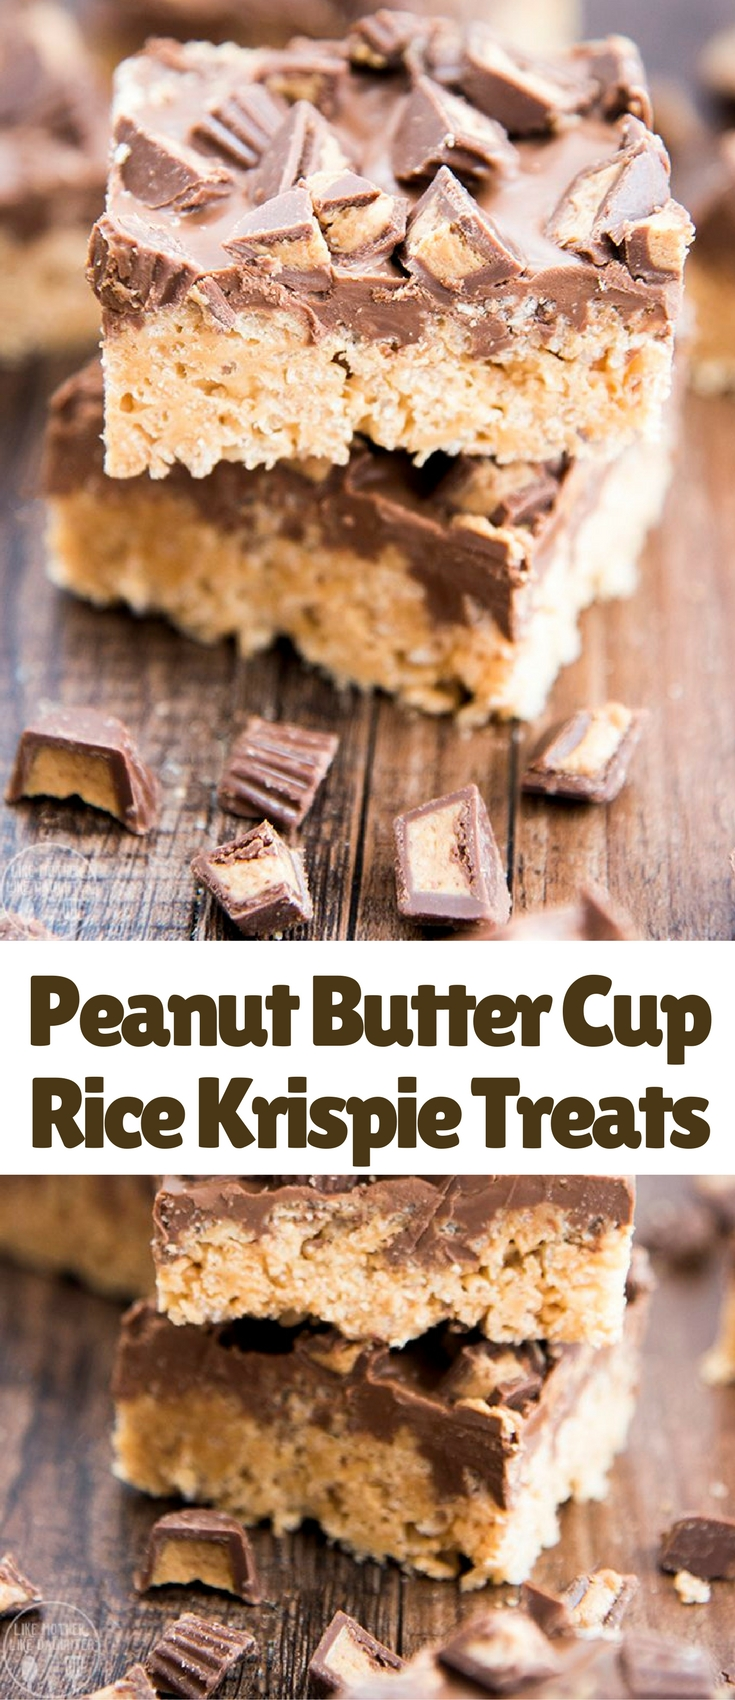 These peanut butter cup rice krispie treats are a perfect easy and delicious treat. With a peanut butter marshmallow krispie treat base, topped with a chocolate peanut butter ganache and chopped peanut butter cups!